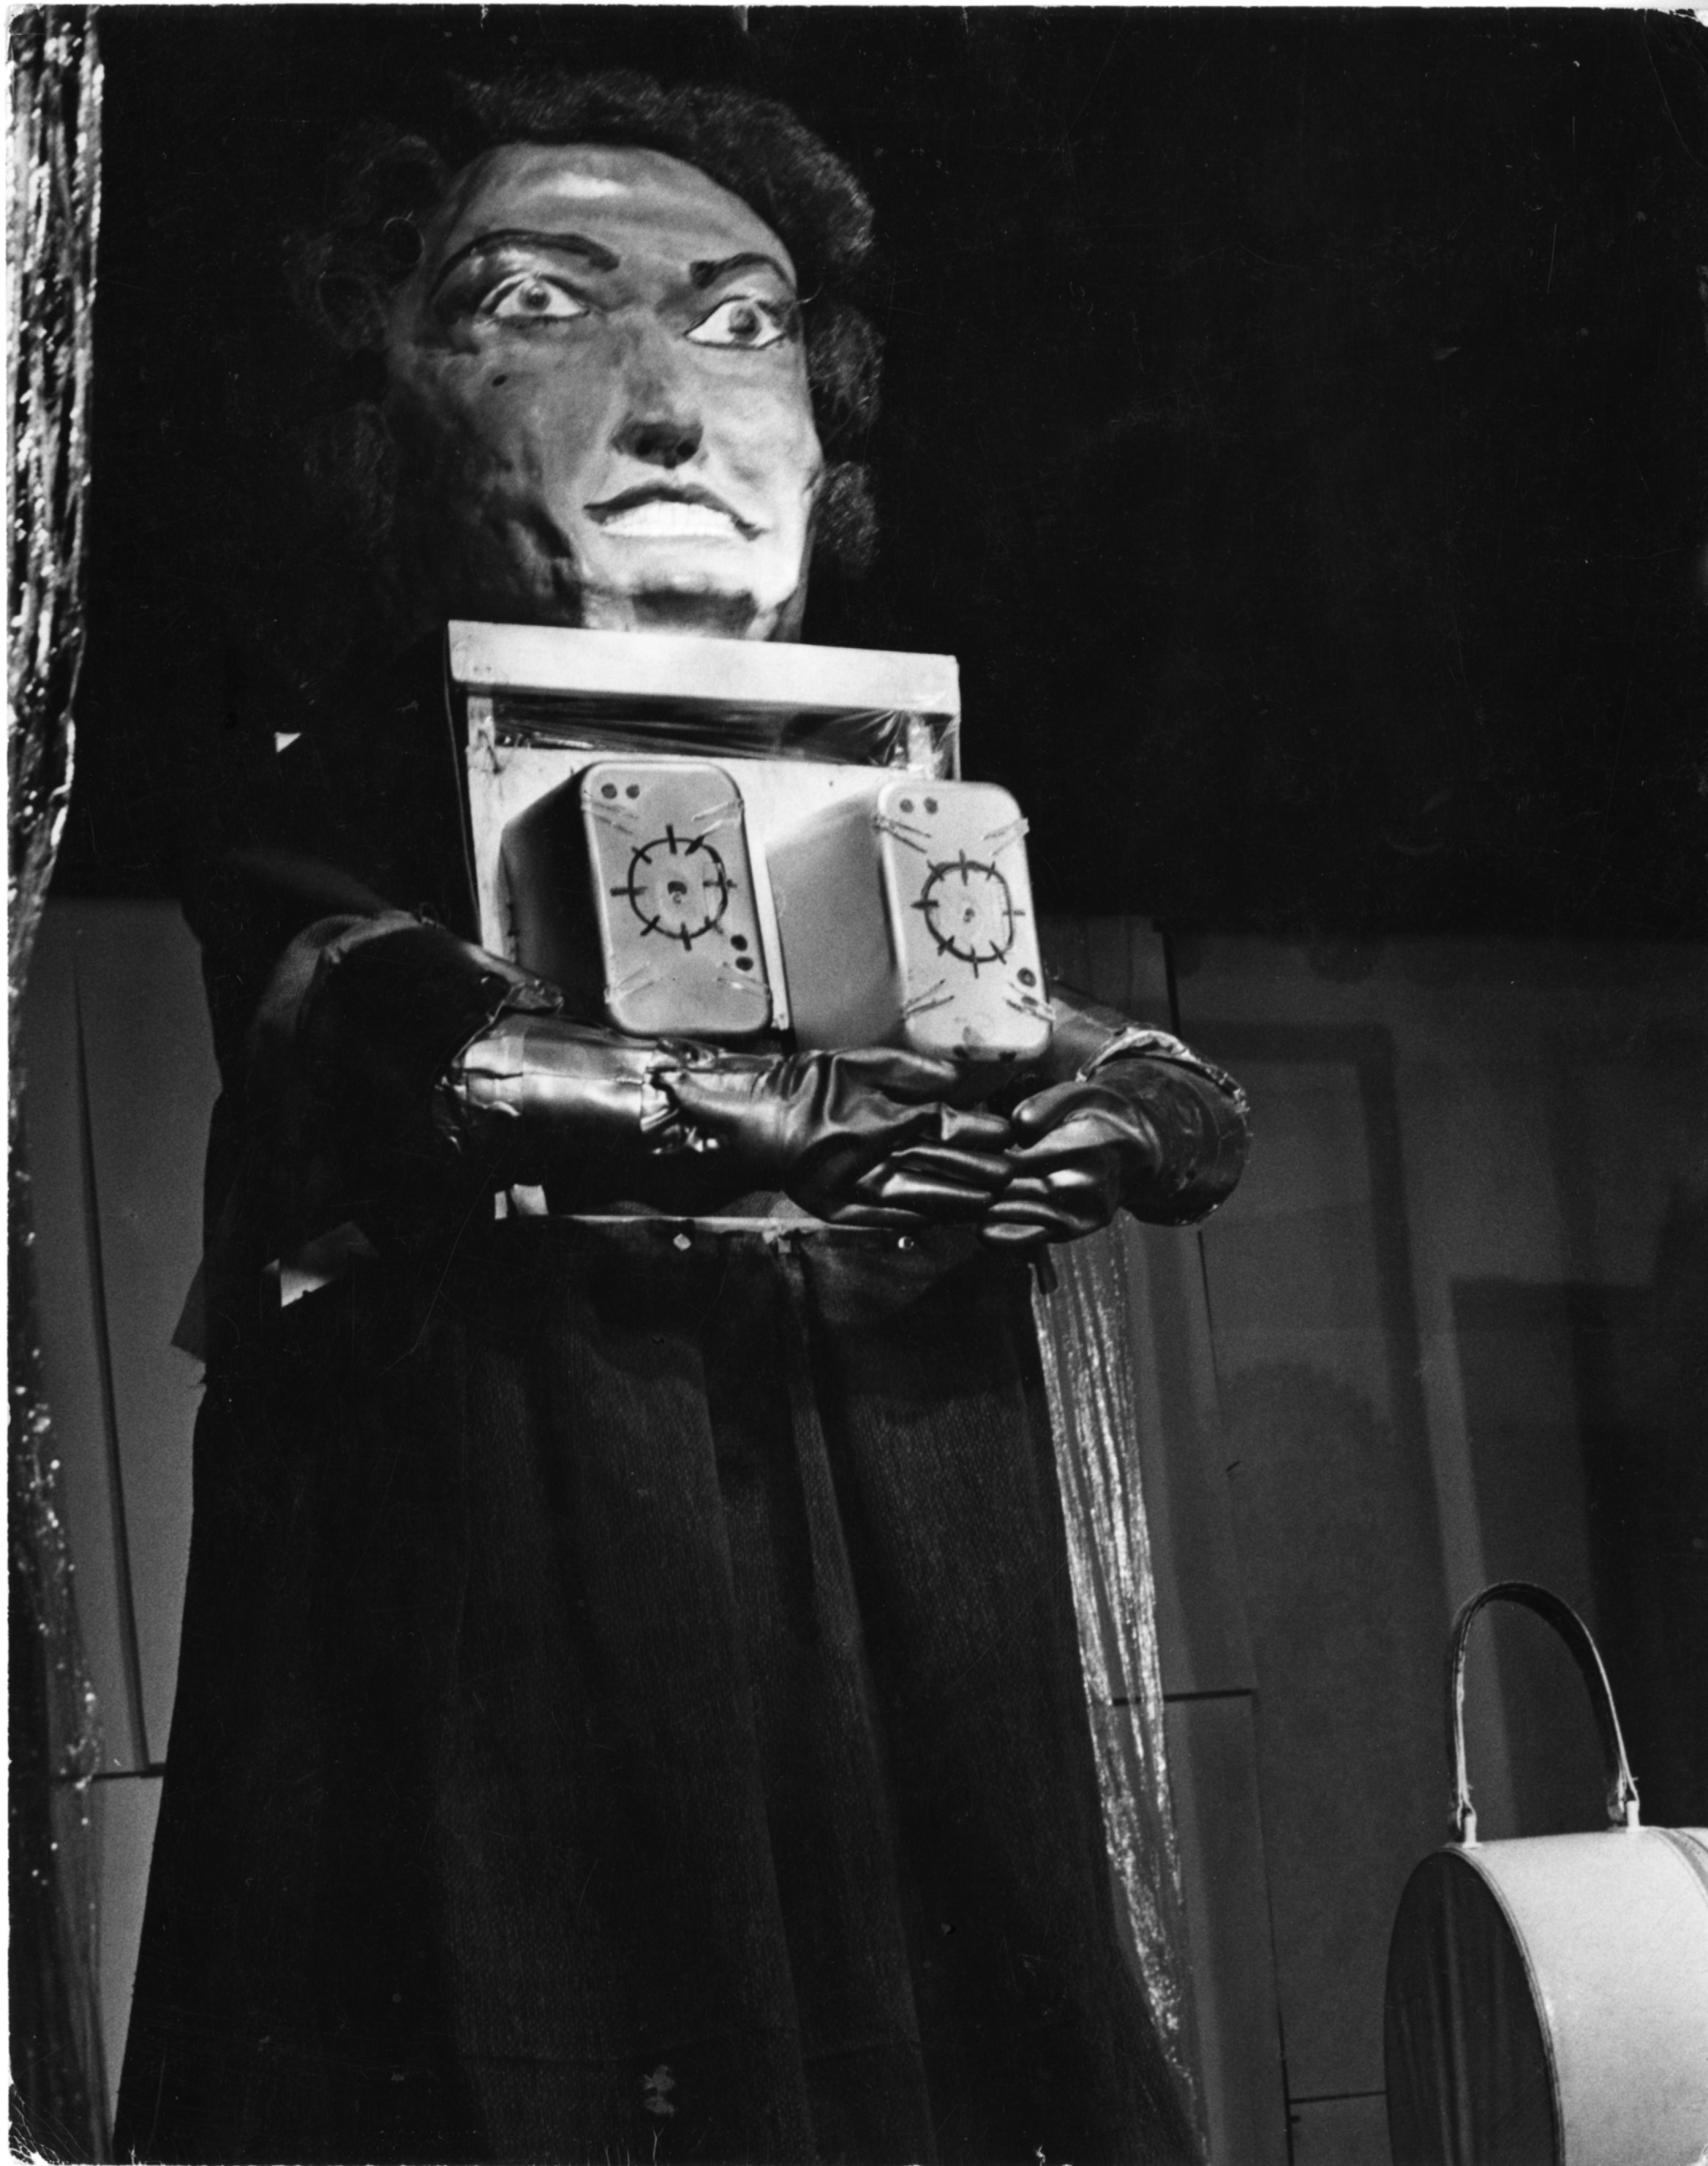 A performer wearing a large mask resembling a human face and wearing gloves, holding a large object